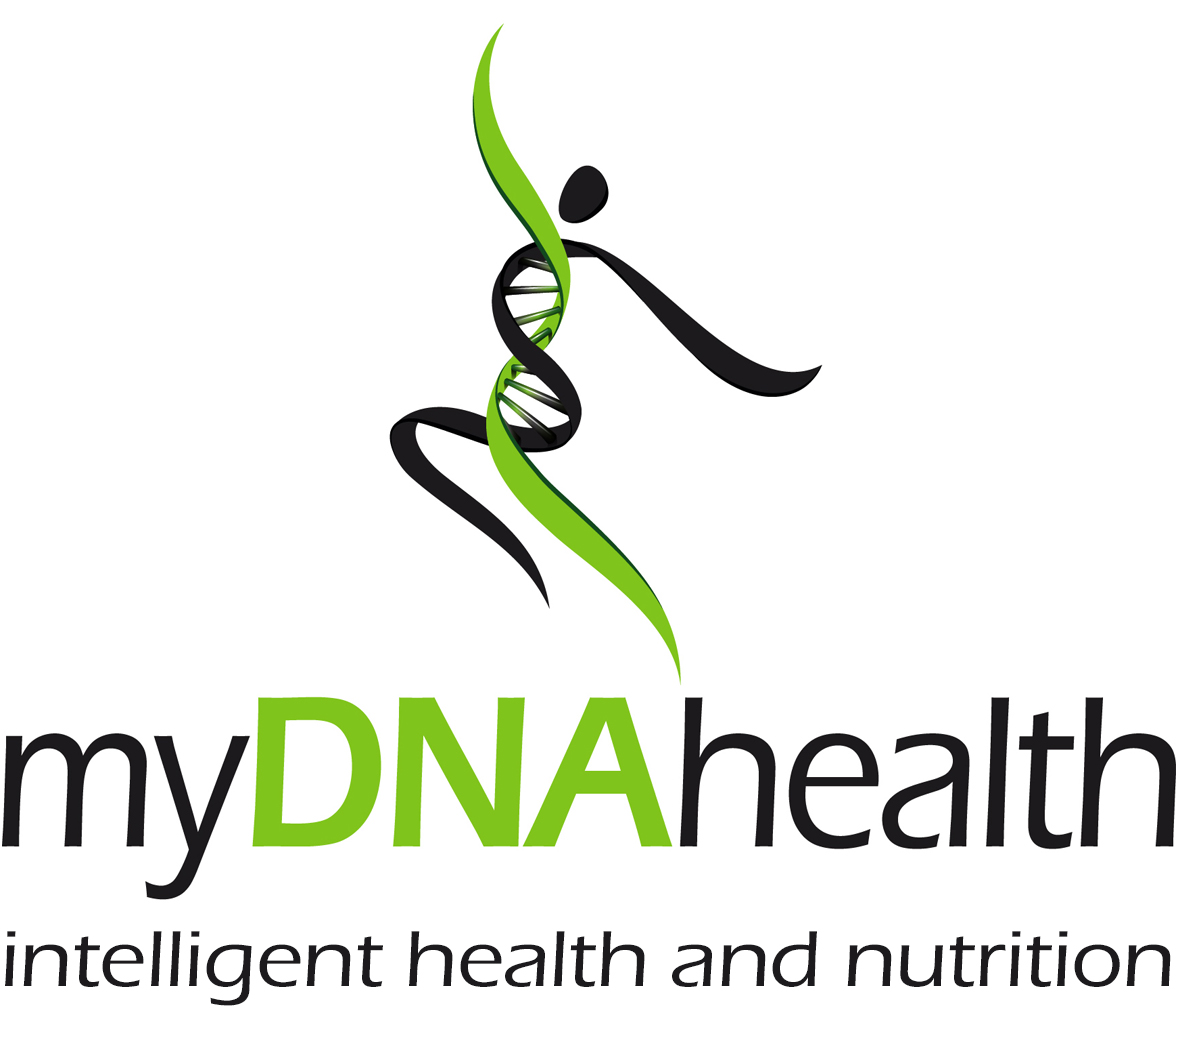 myDNAhealth - The Nutritional Genomics Interpretation Programme